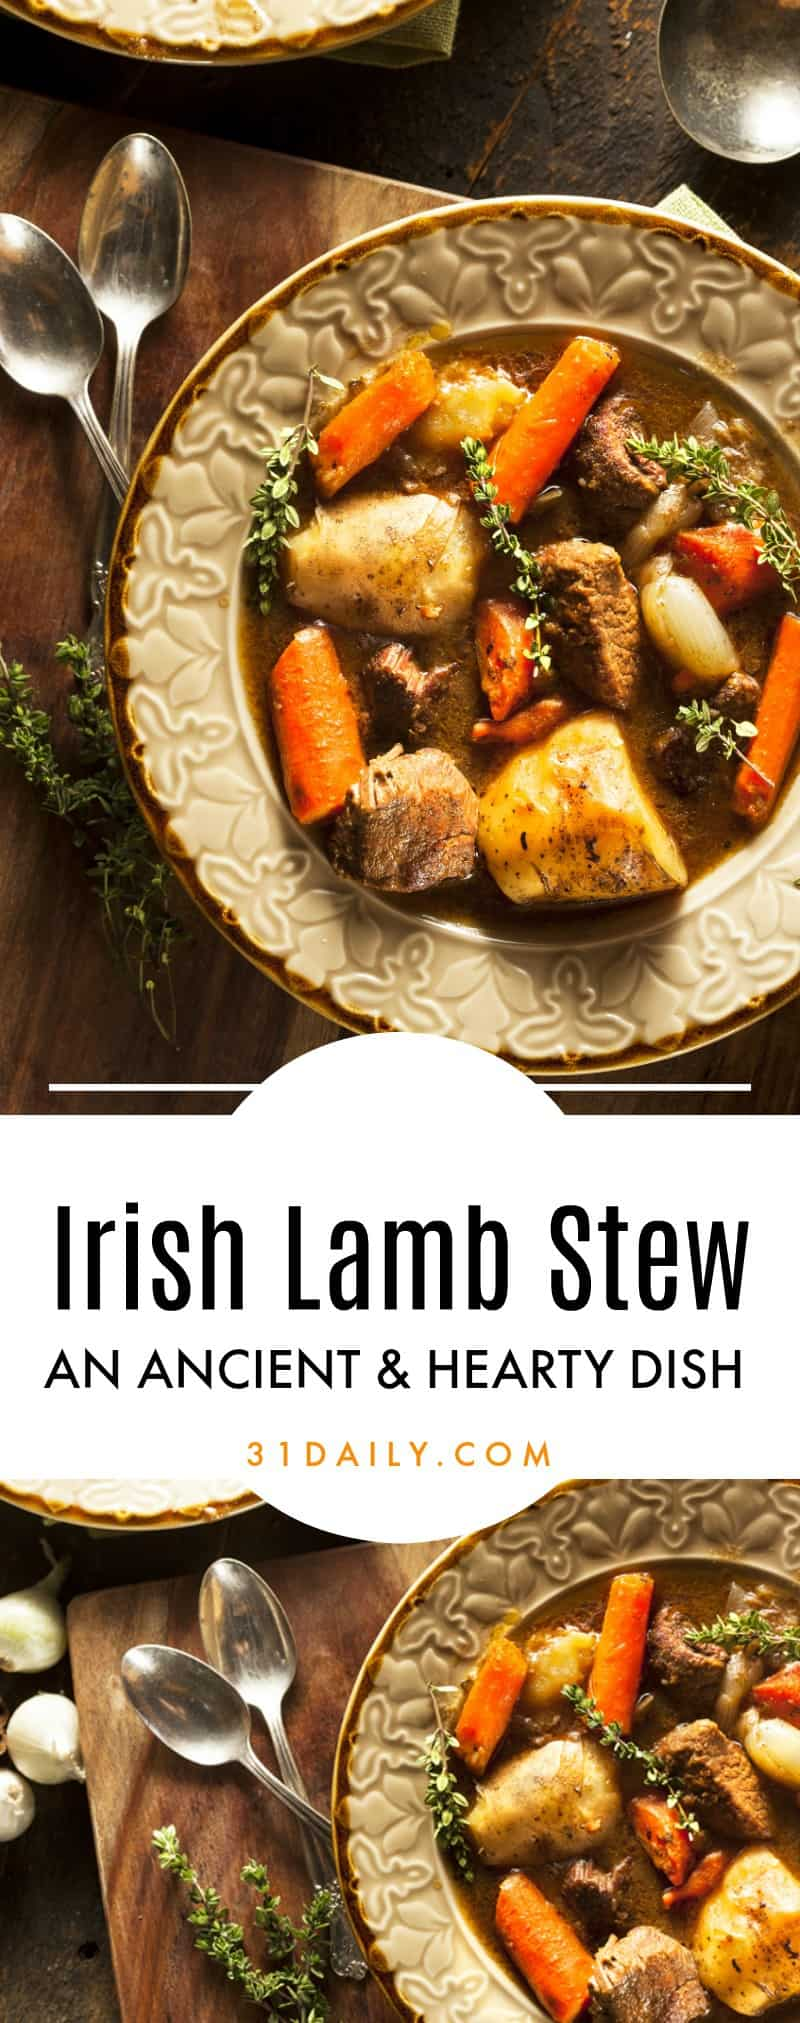 Irish Stew: an Ancient and Hearty Dish | 31Daily.com